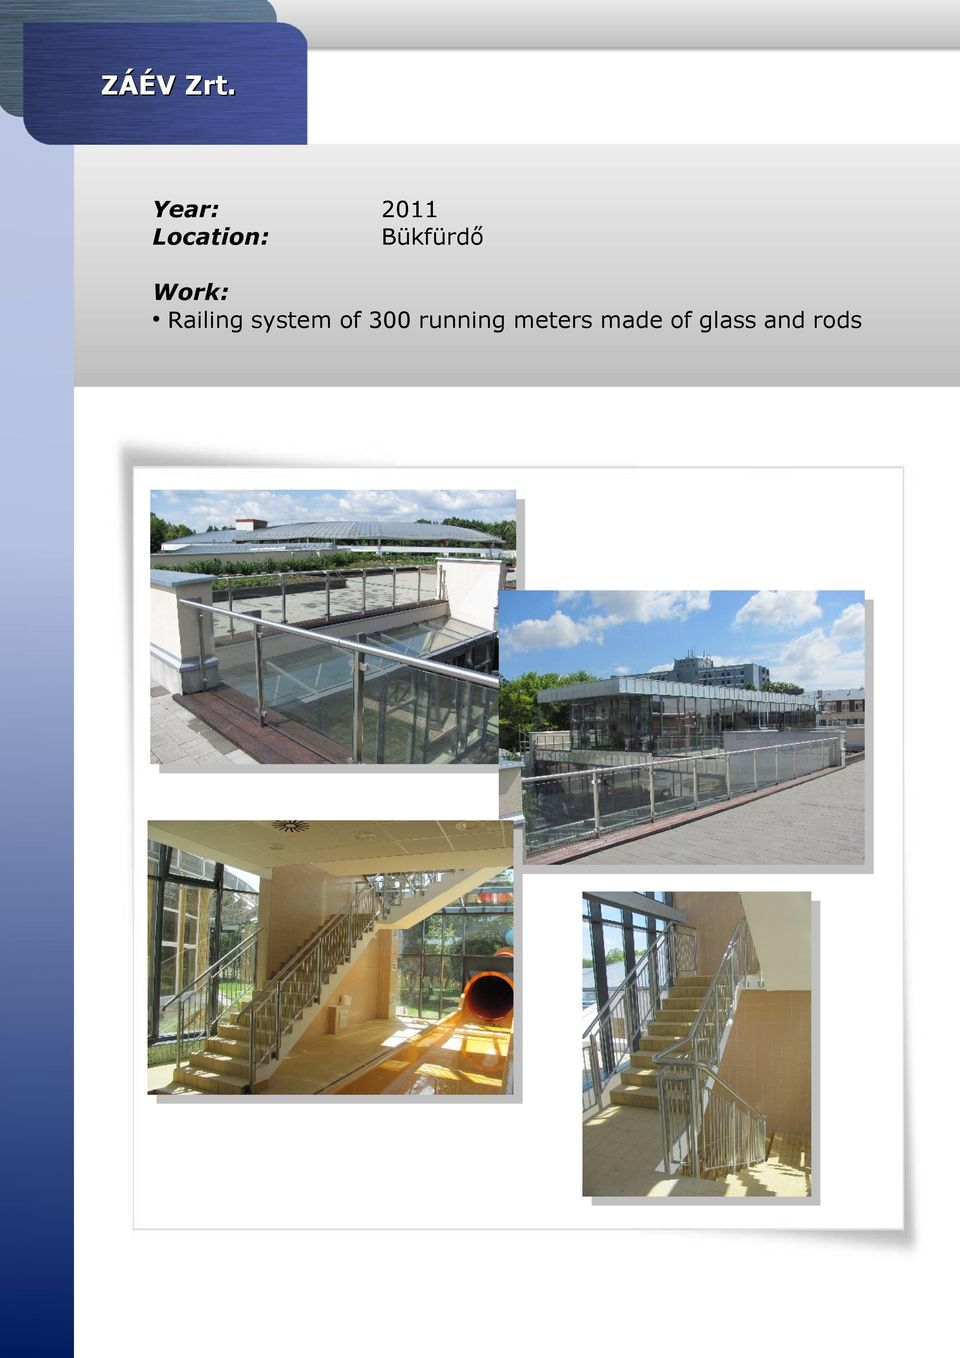 Railing system of